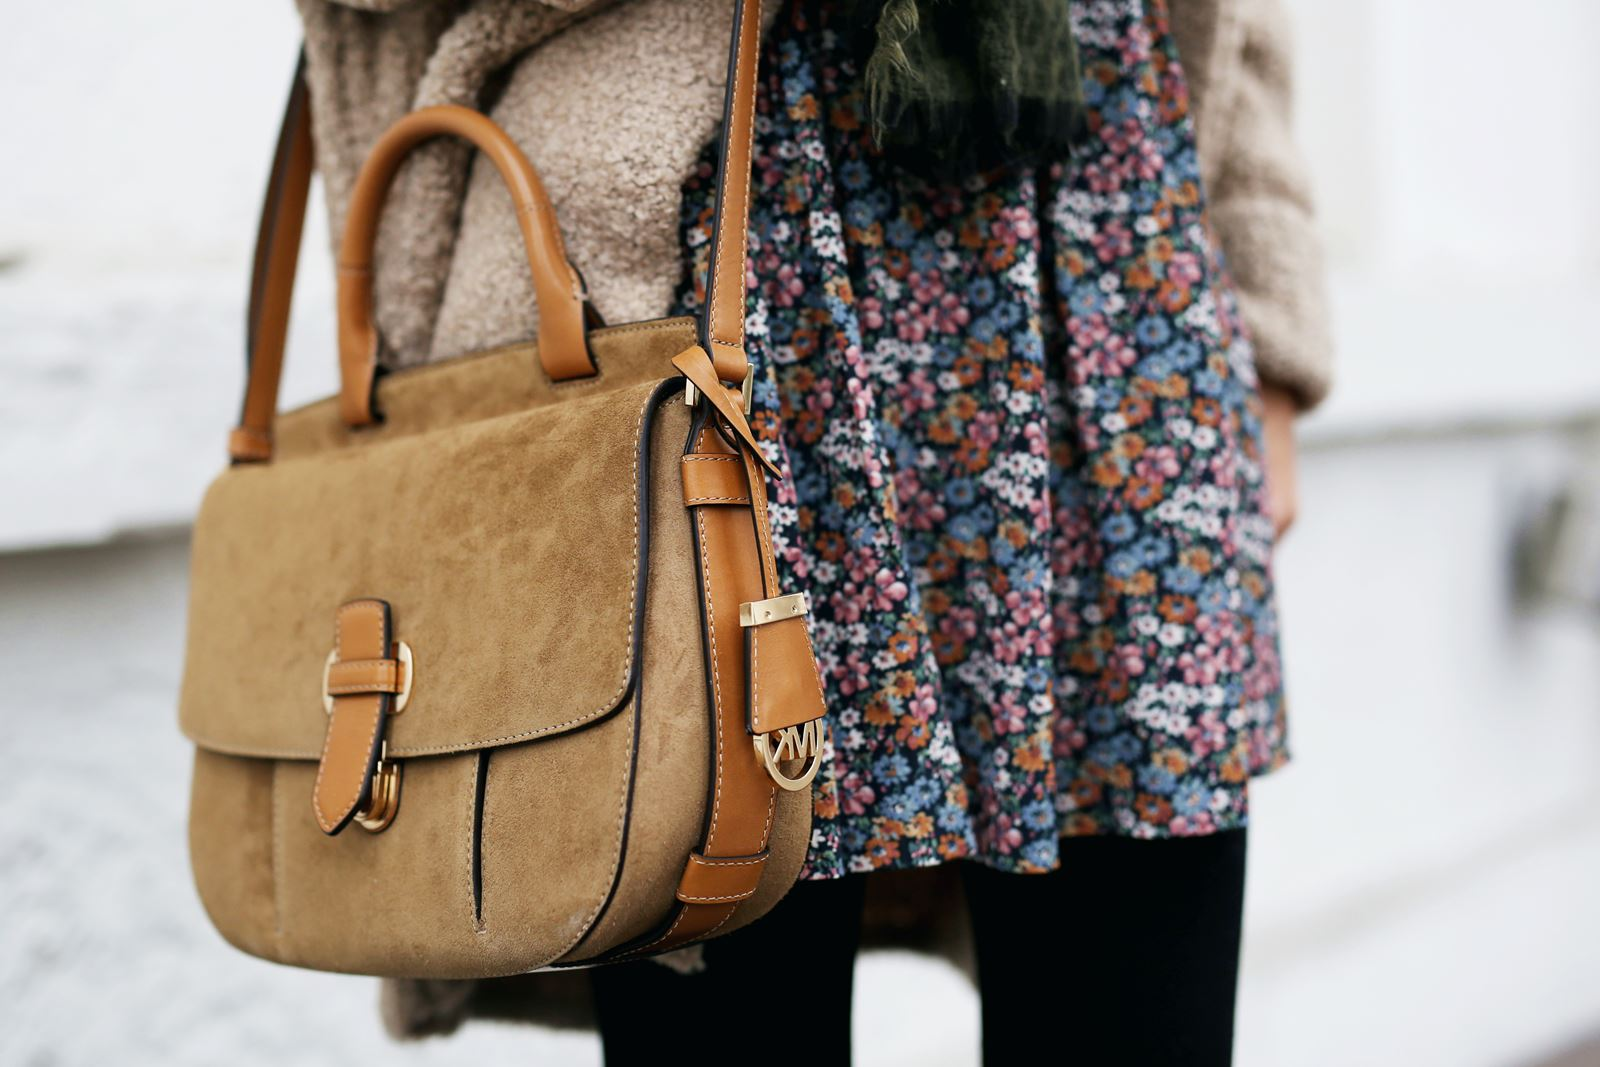 modeblog-fashion-blog-outfit-herbst-mantel-michael-kors-tasche-8